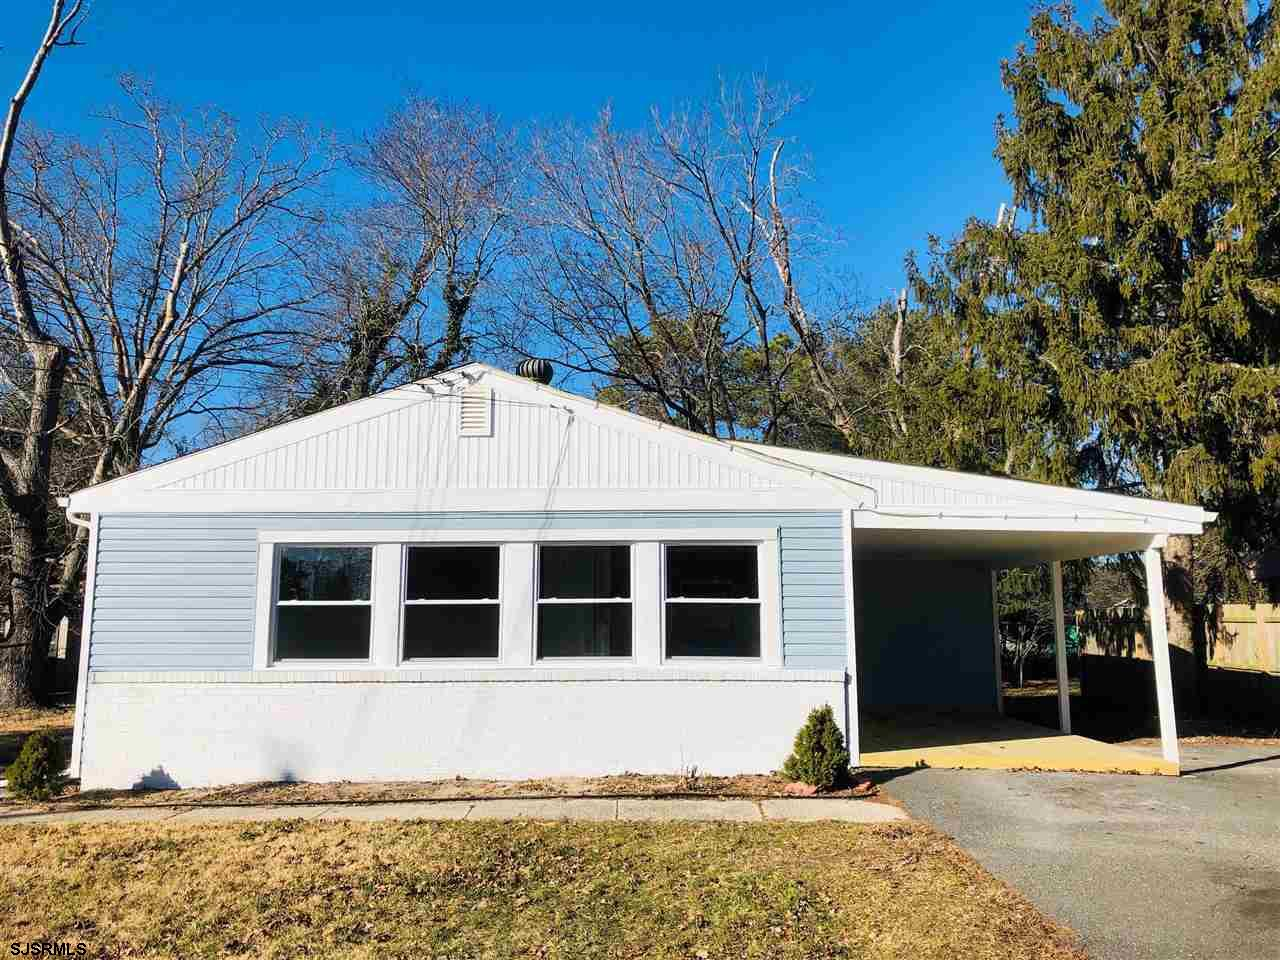 Fully remodeled! This three bedroom one bath ranch style home features: New vinyl siding, new window